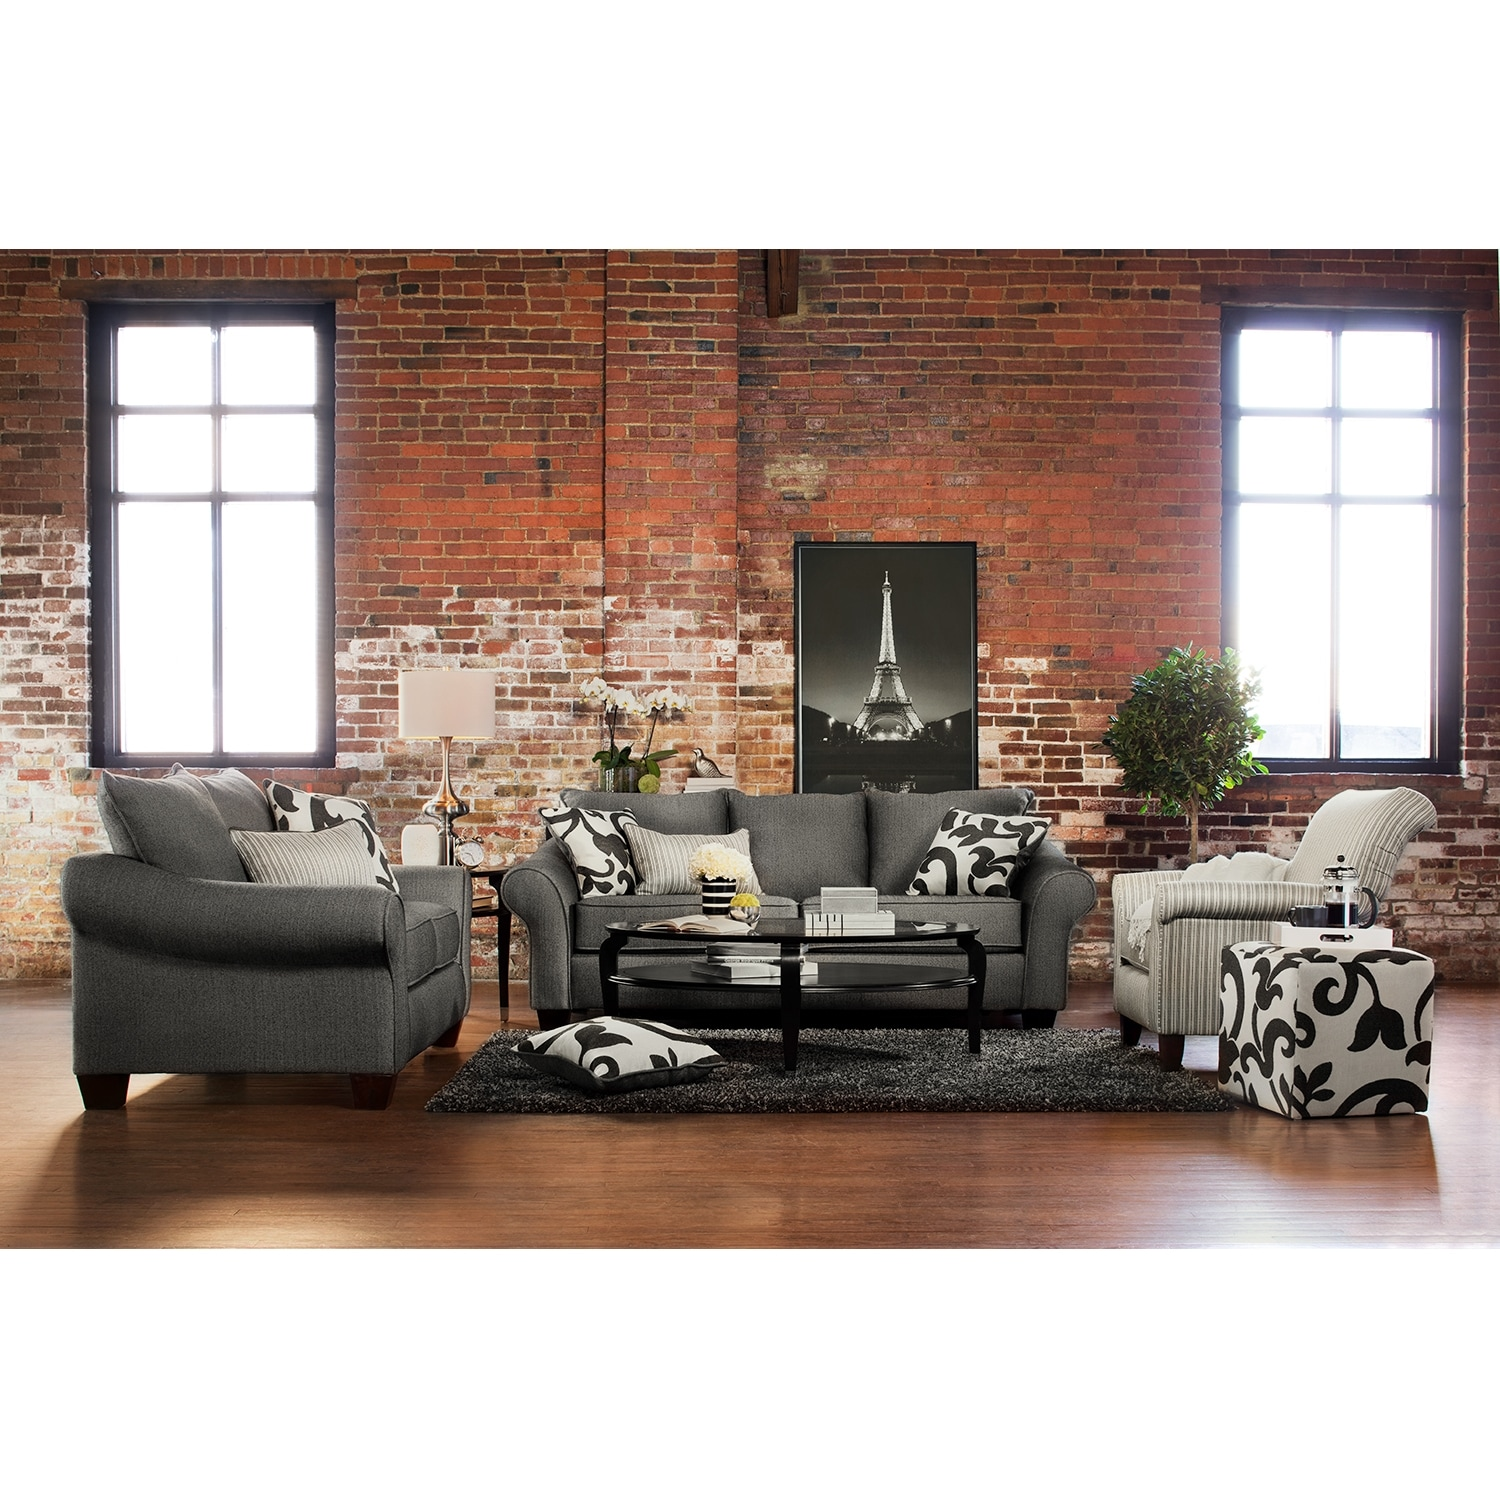 Grey Living Room Chairs Colette Sofa Loveseat And Accent Chair Set Gray Value